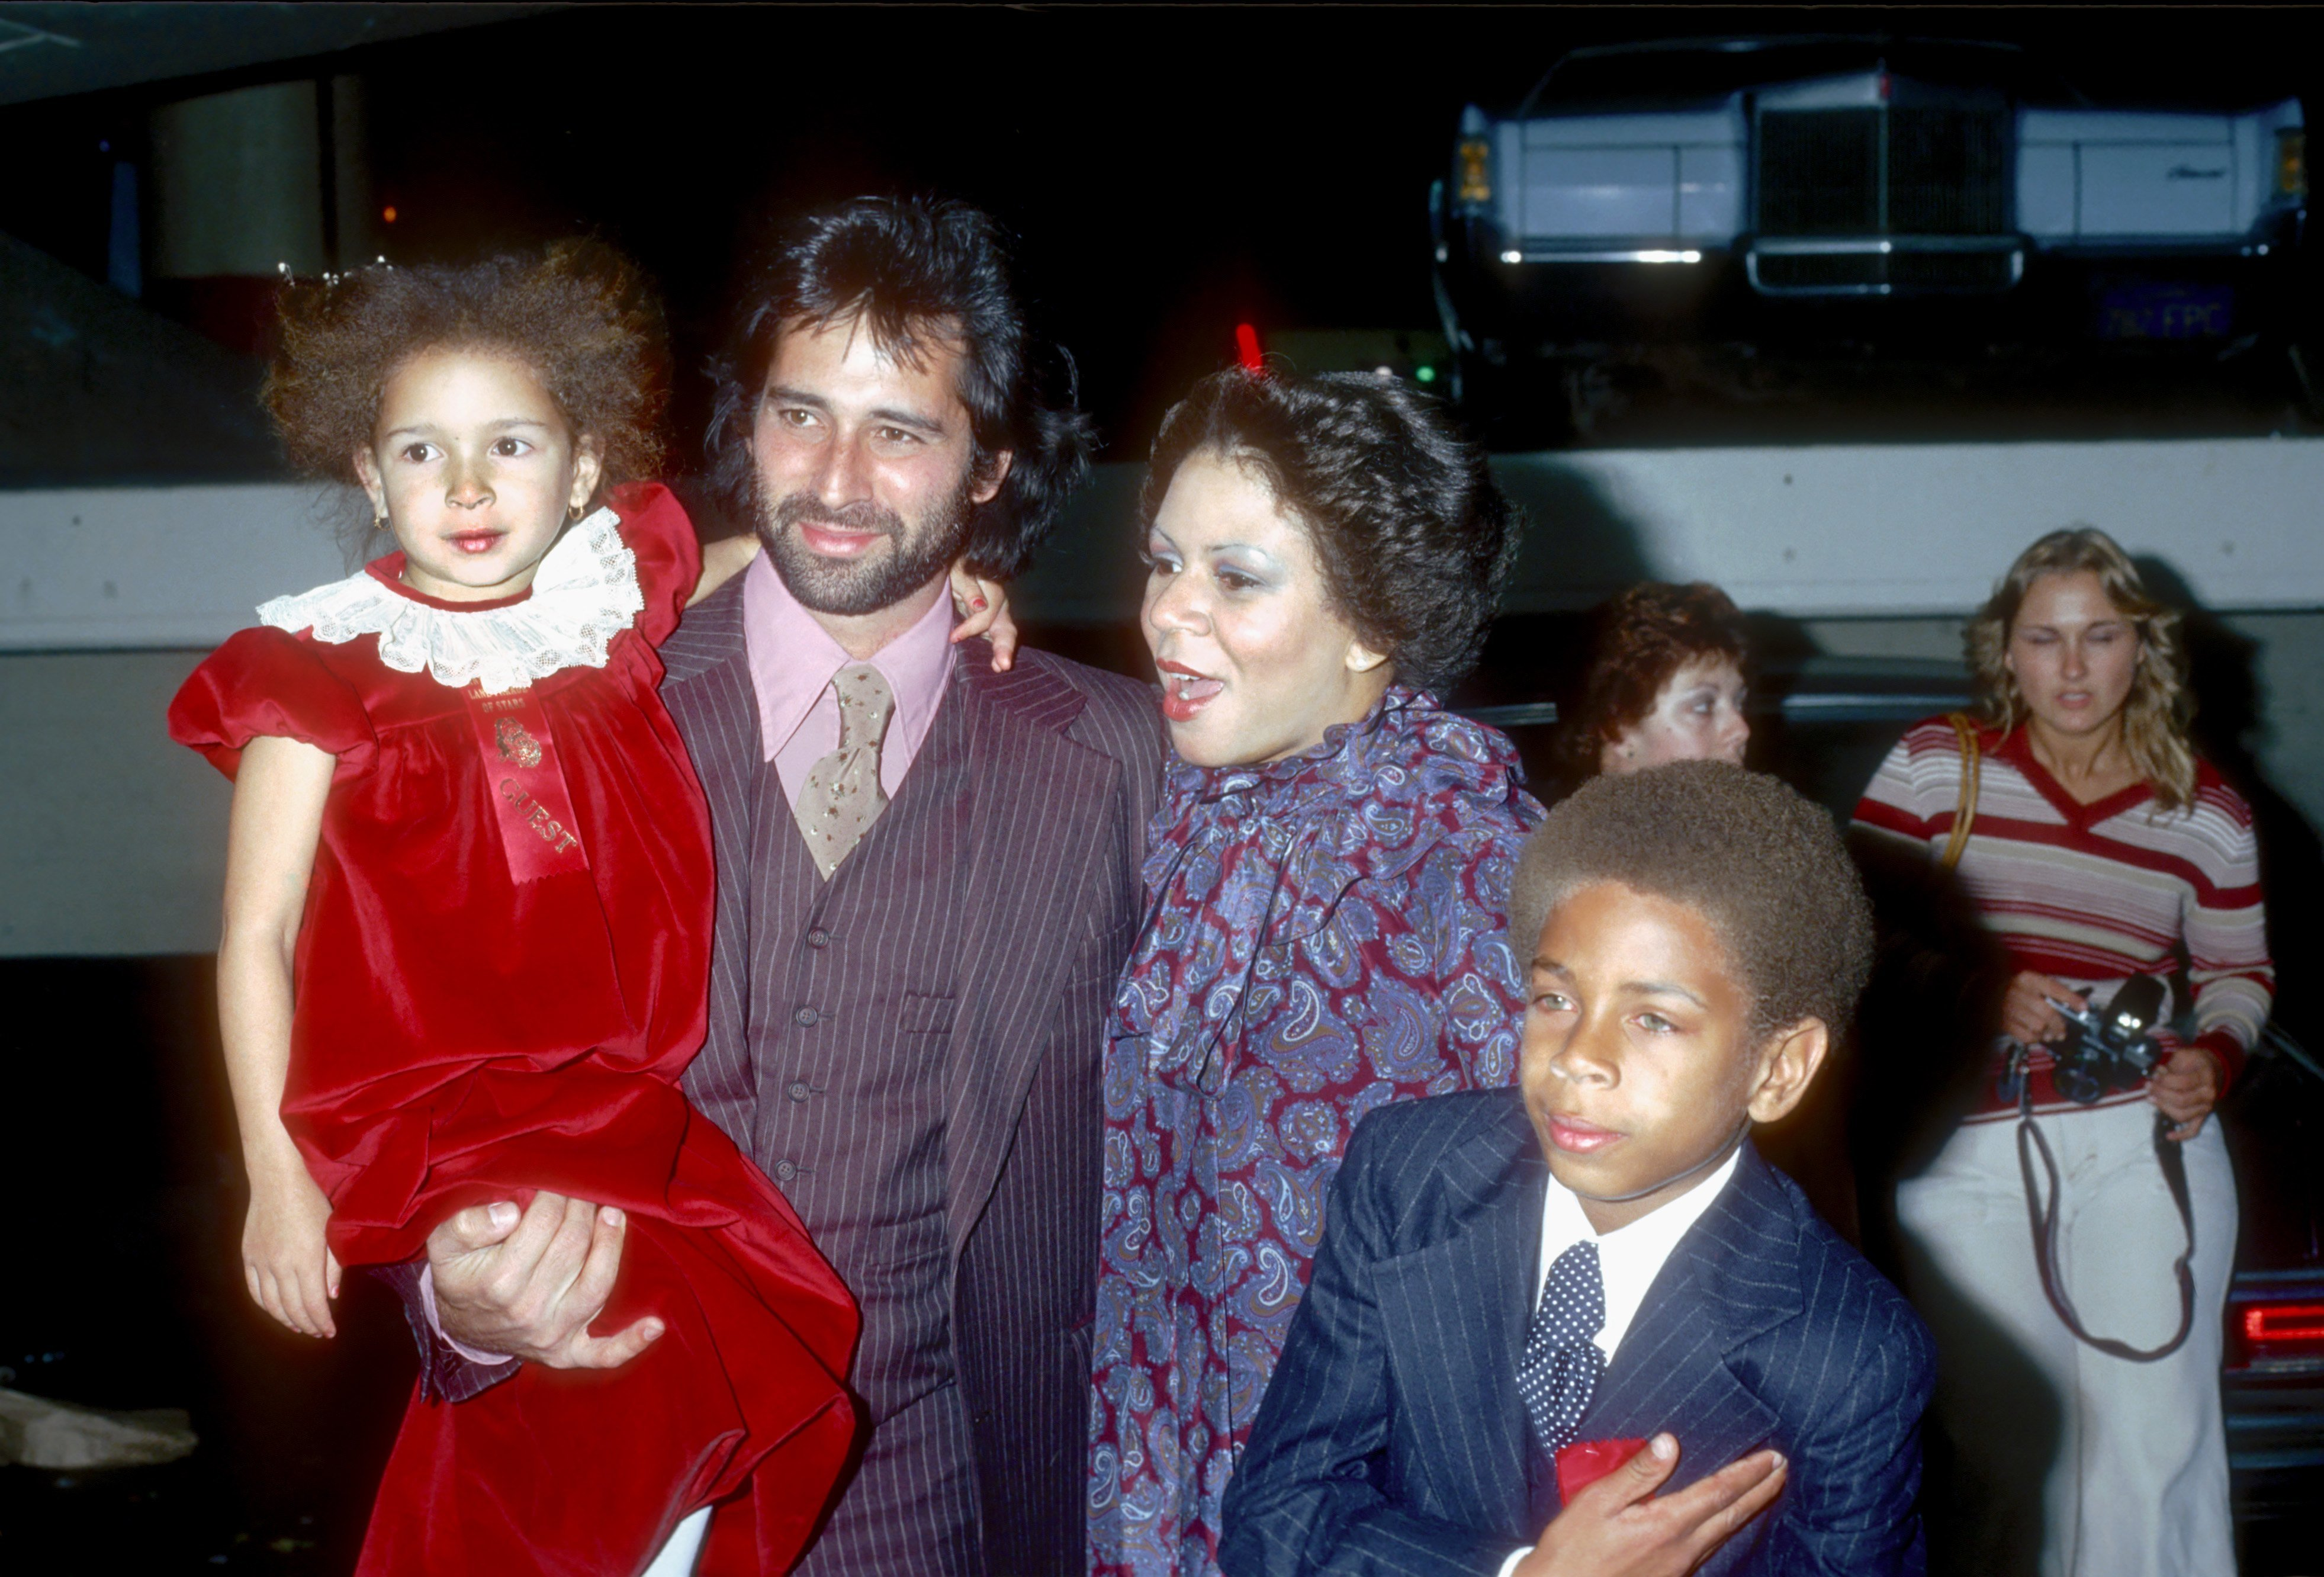 Minnie Riperton, Richard Rudolph and their children Maya and Marc Rudolph at the Hollywood Christmas Parade in December 1978 in Los Angeles, California.   Photo: Getty Images